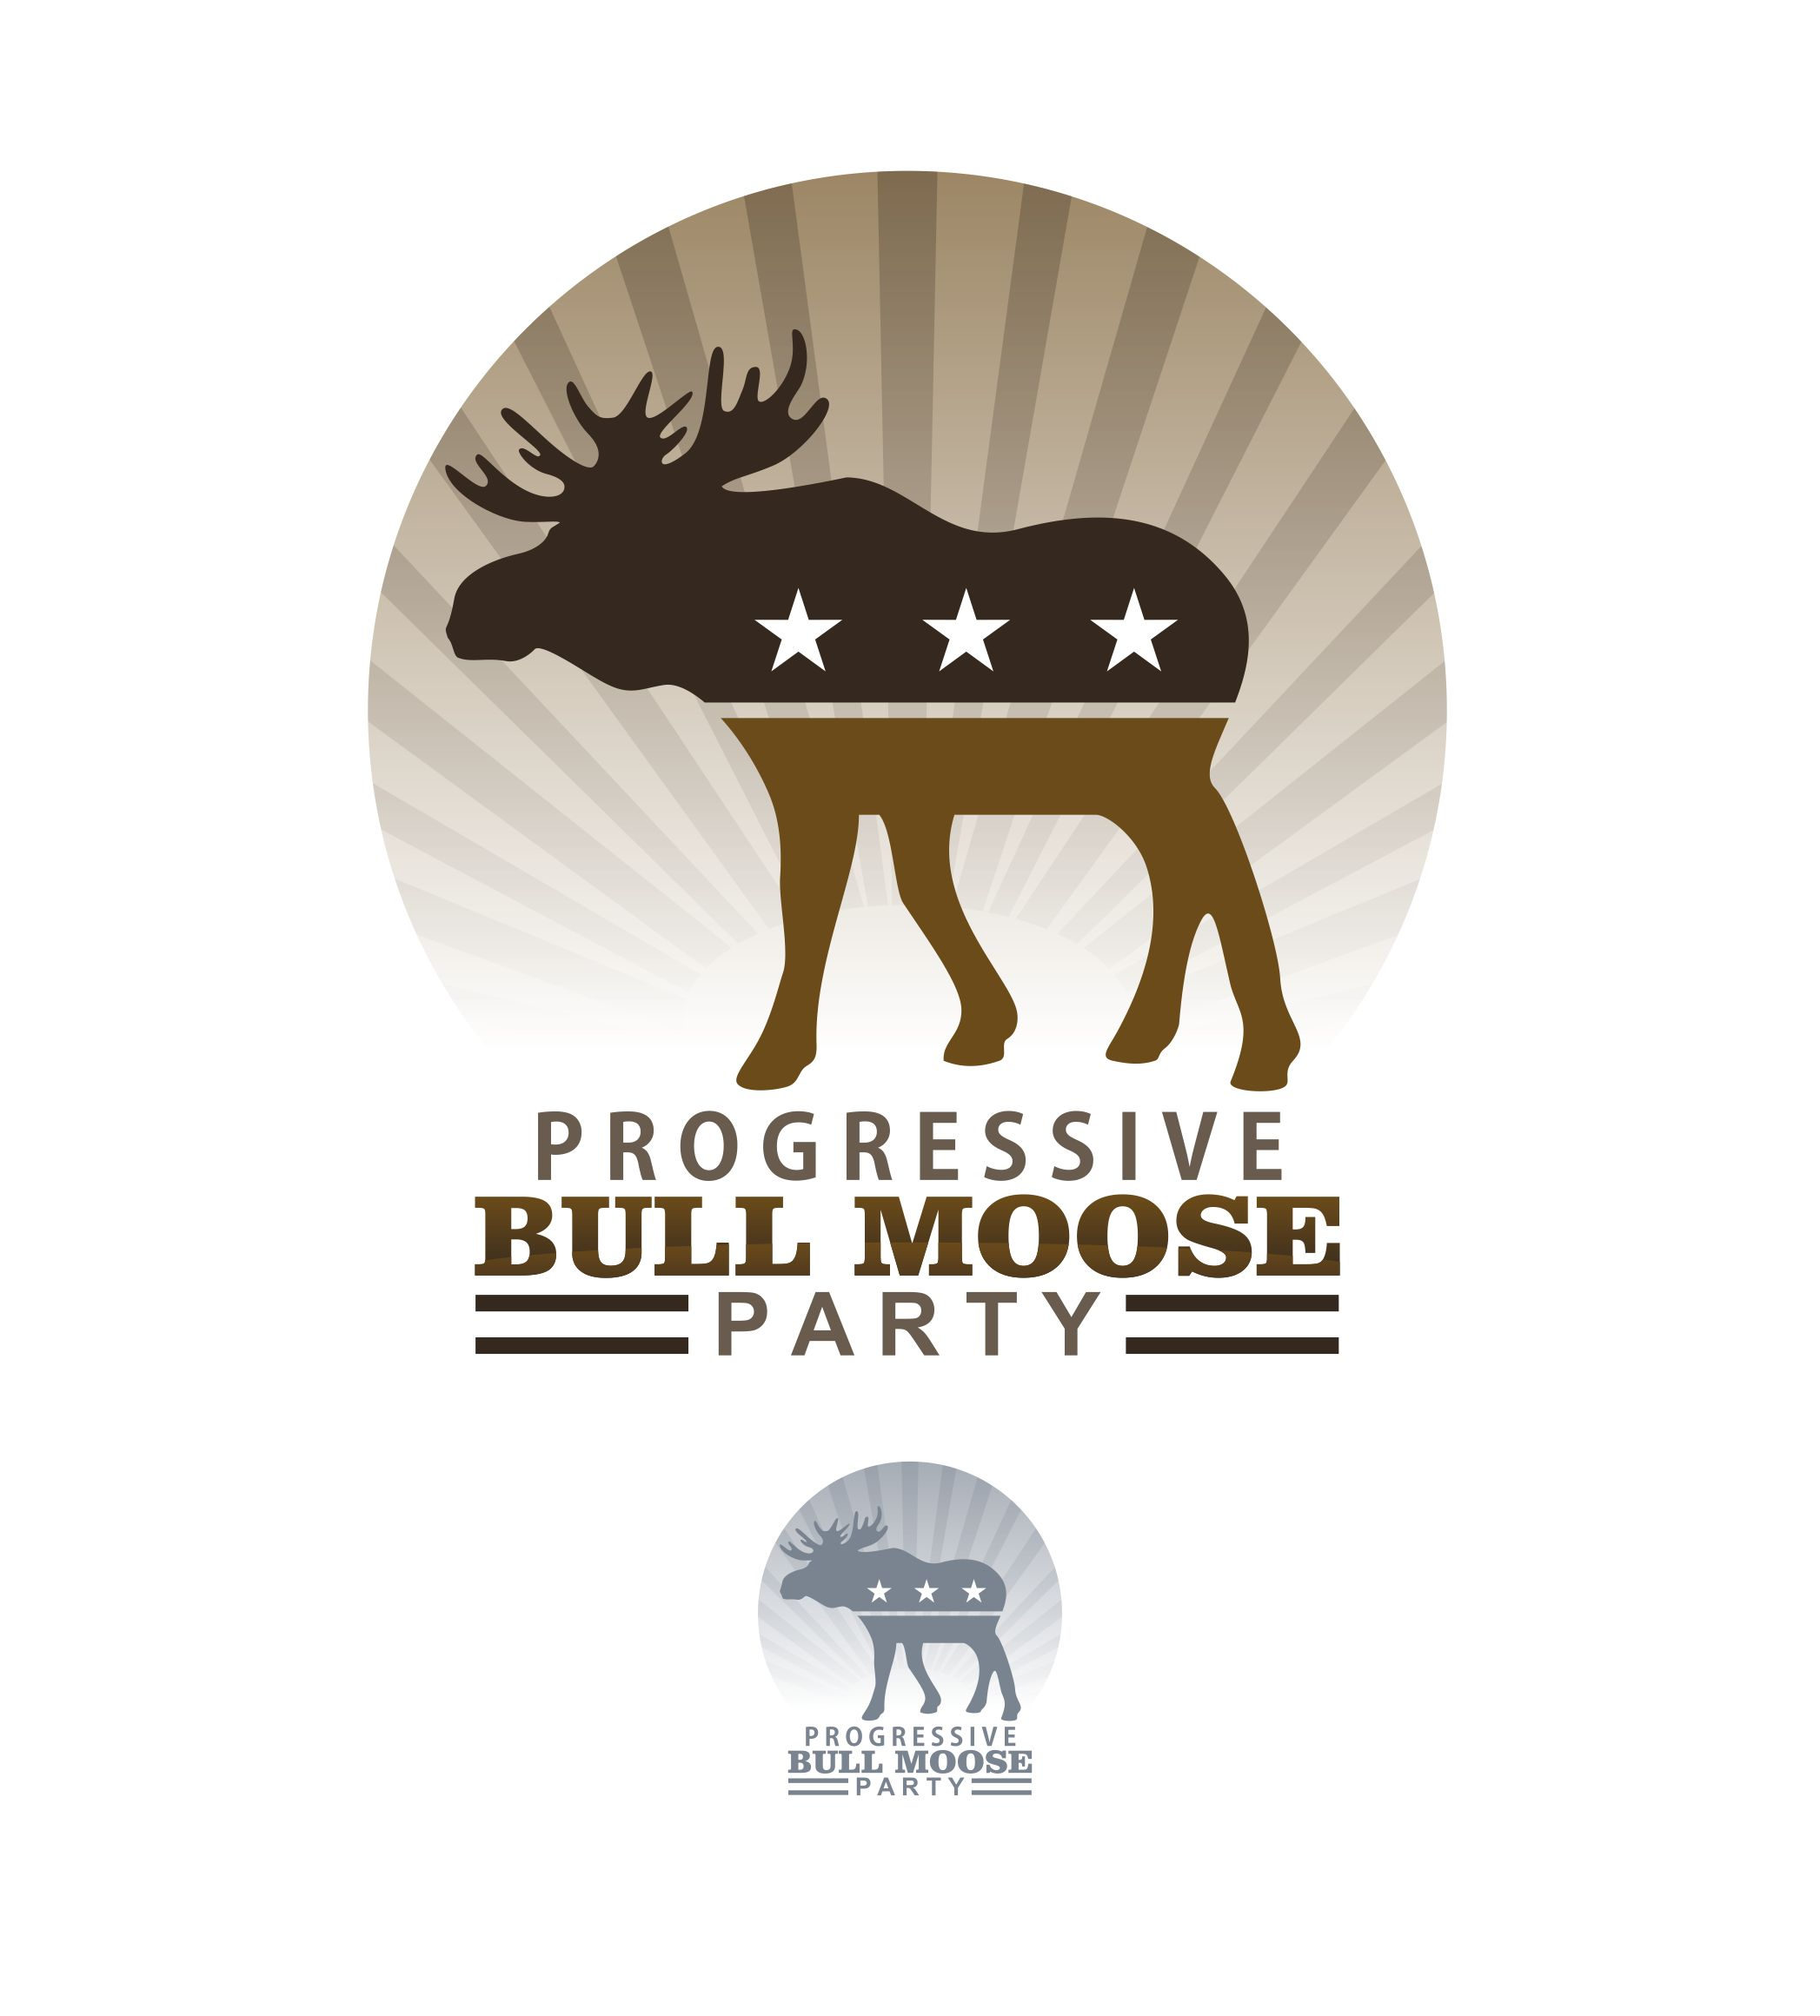 Logo Design by joca - Entry No. 48 in the Logo Design Contest Progressive Bull Moose Party Logo Design.